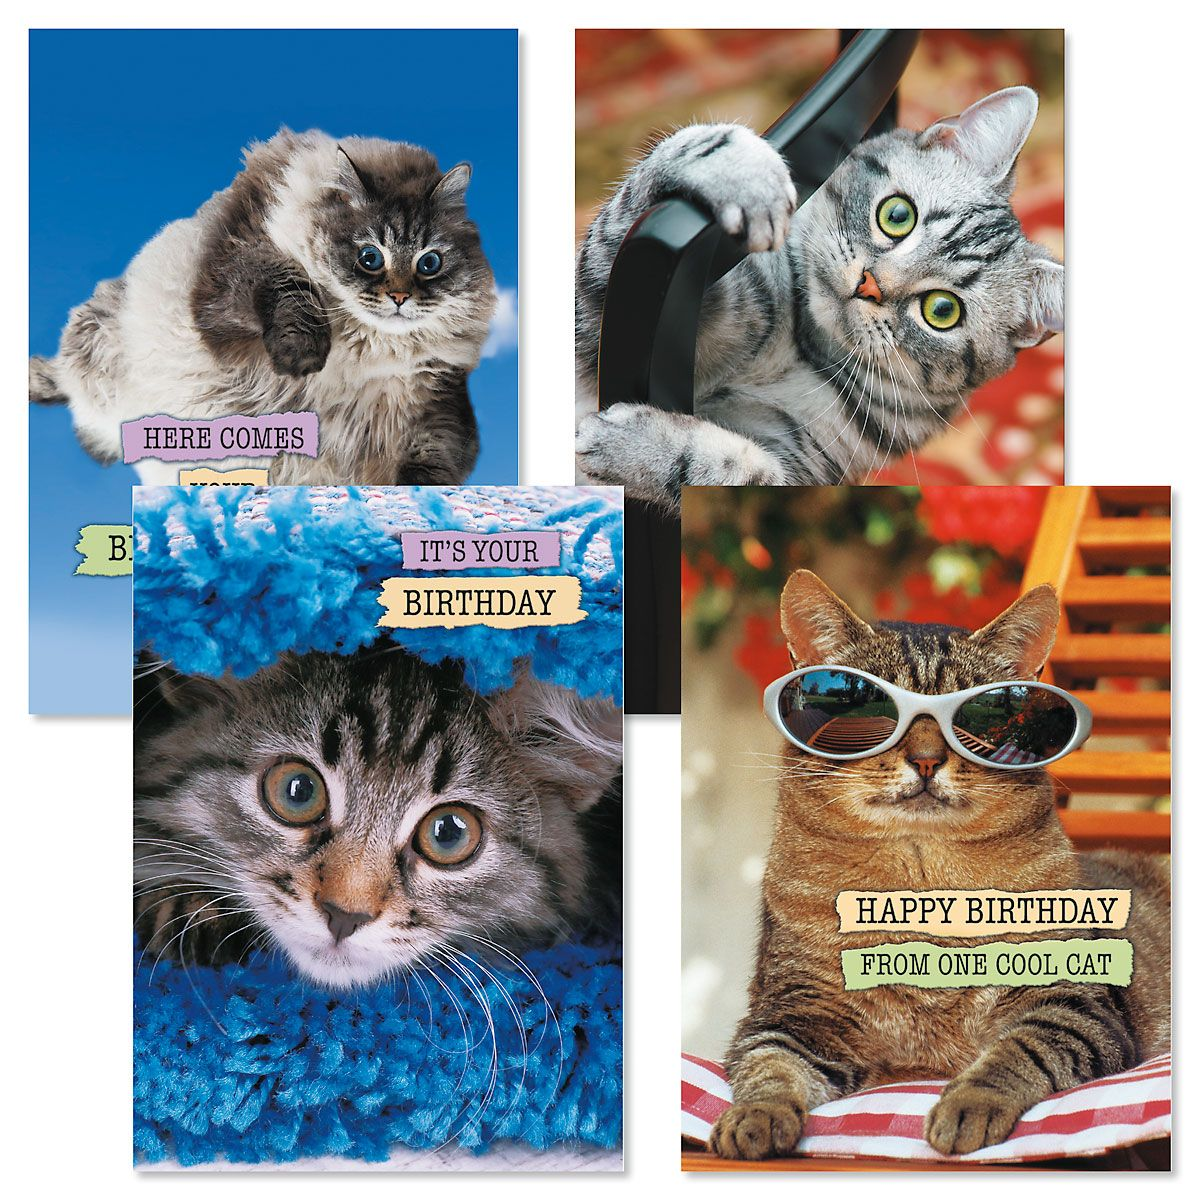 CATtitude Birthday Cards and Seals